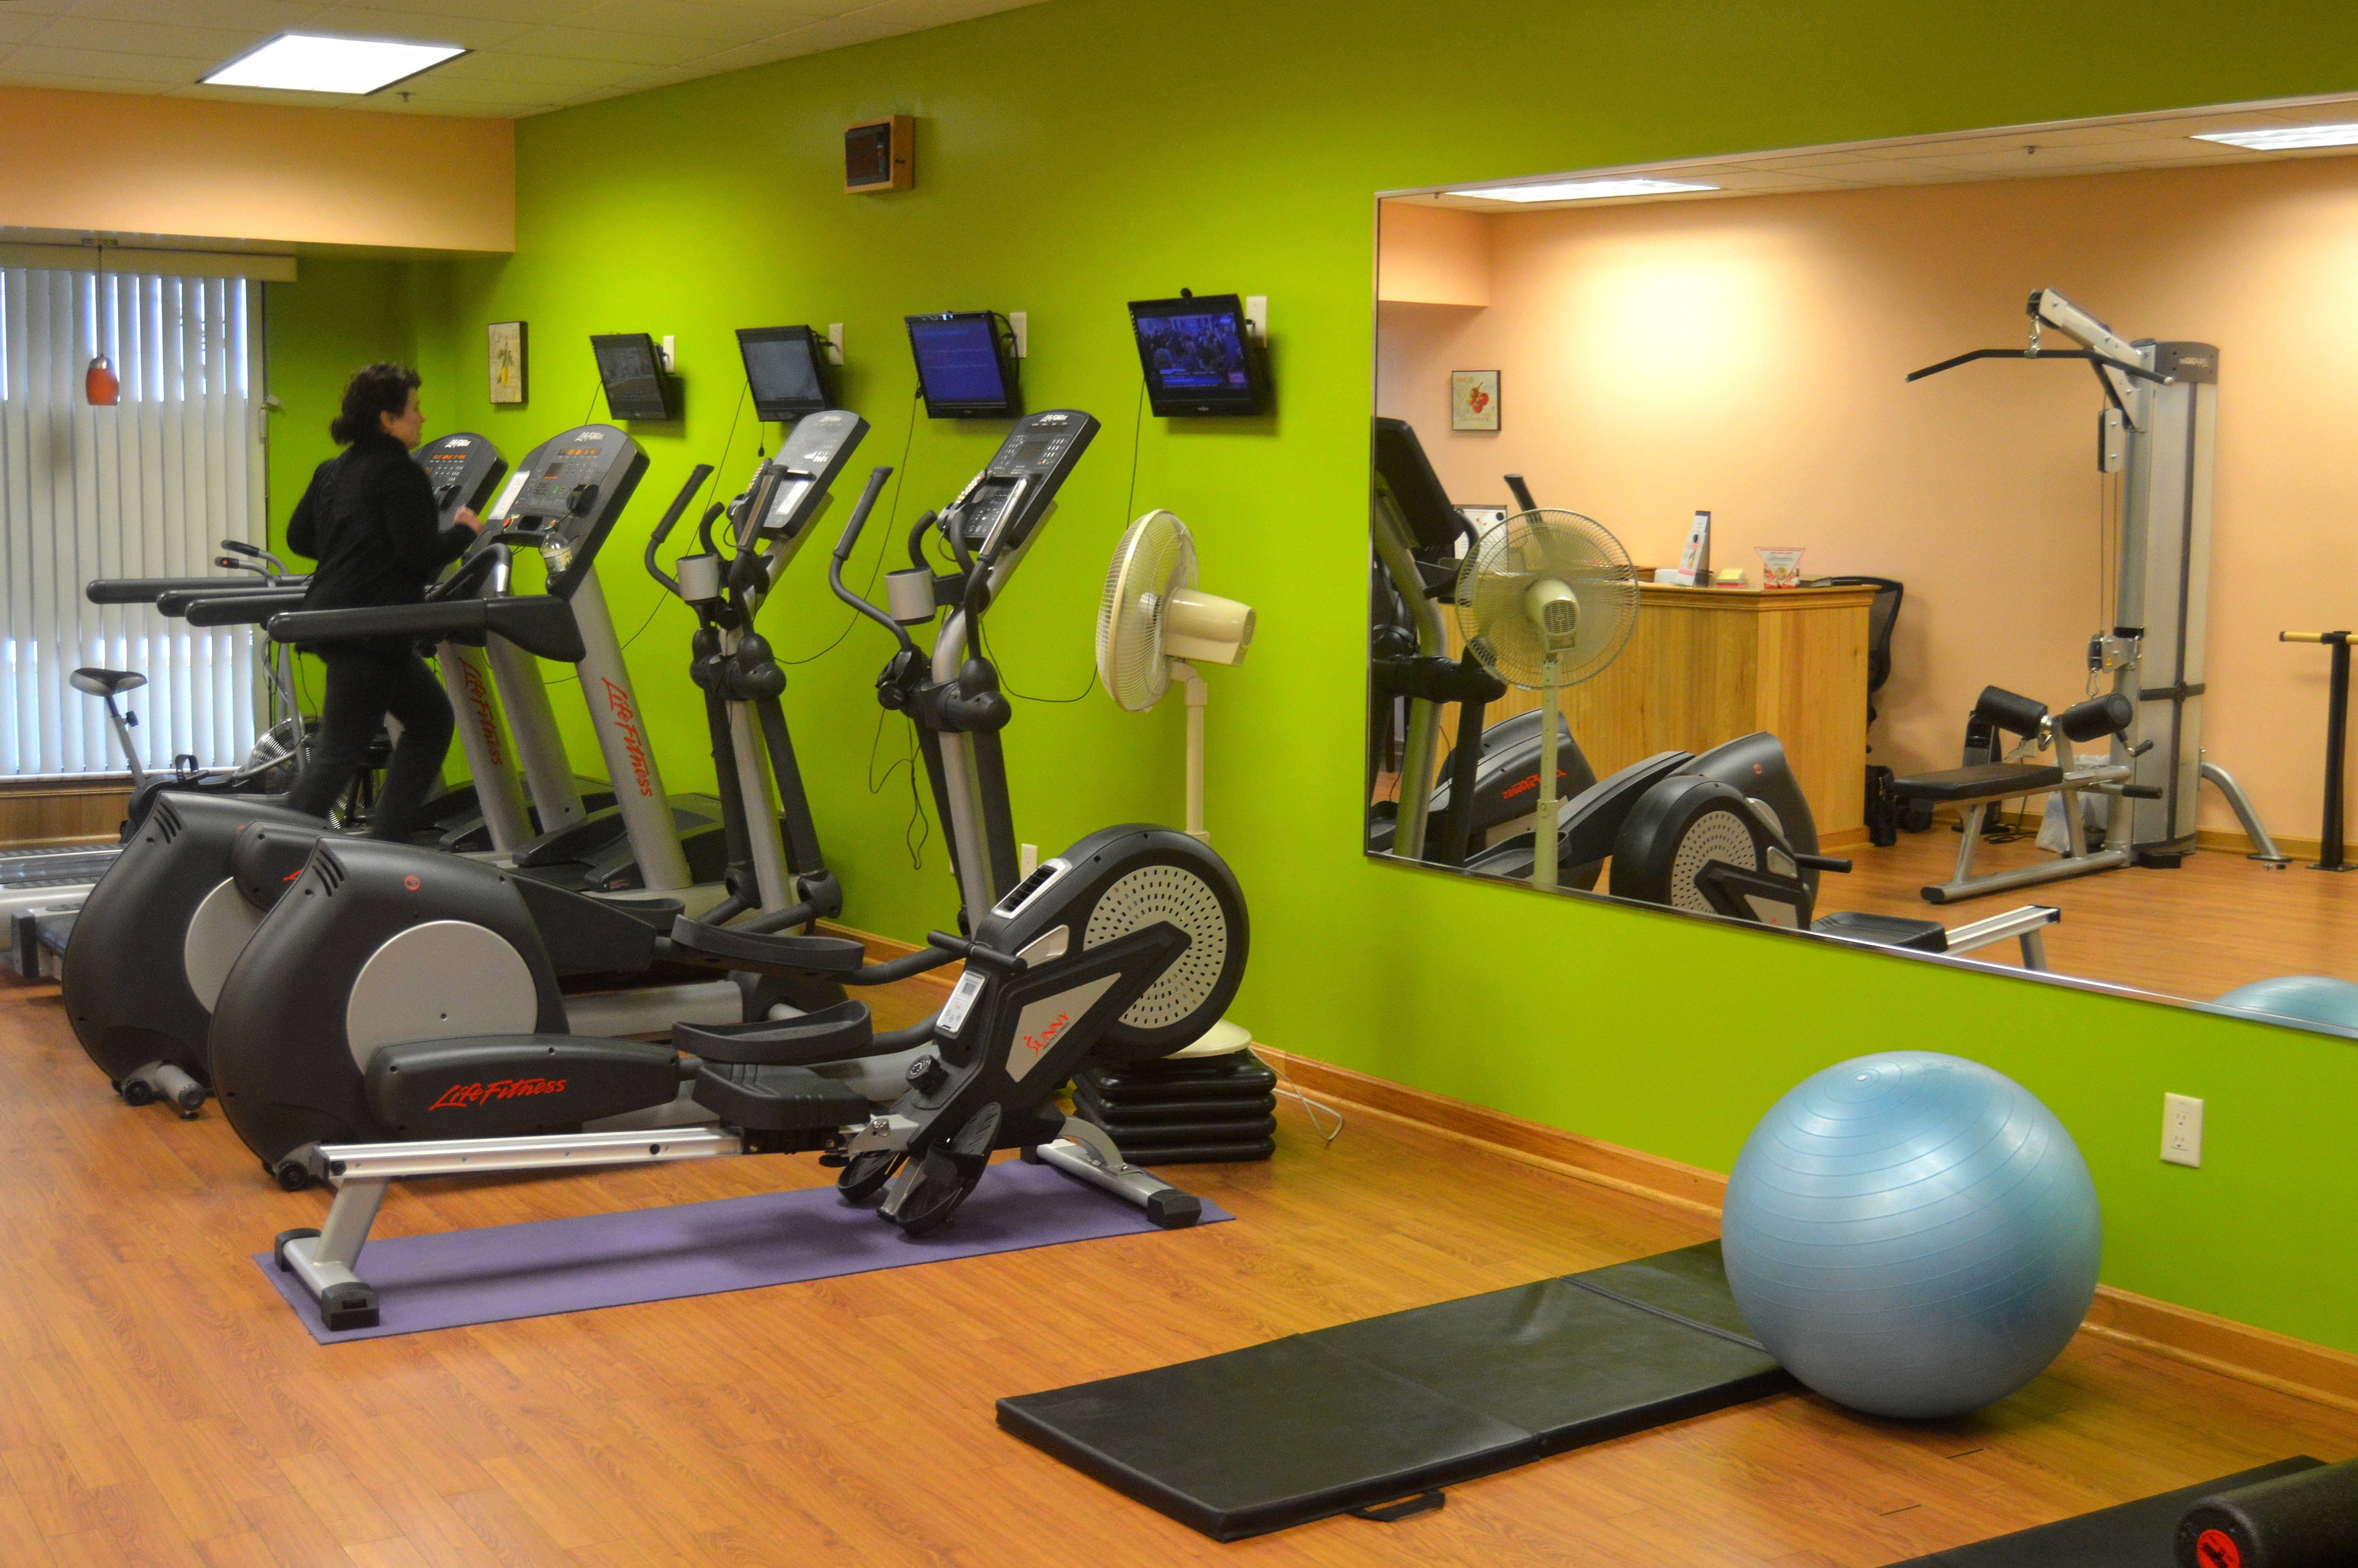 ce092188d763a92bec21_Fit_to_Be_Fab_-_treadmill.JPG